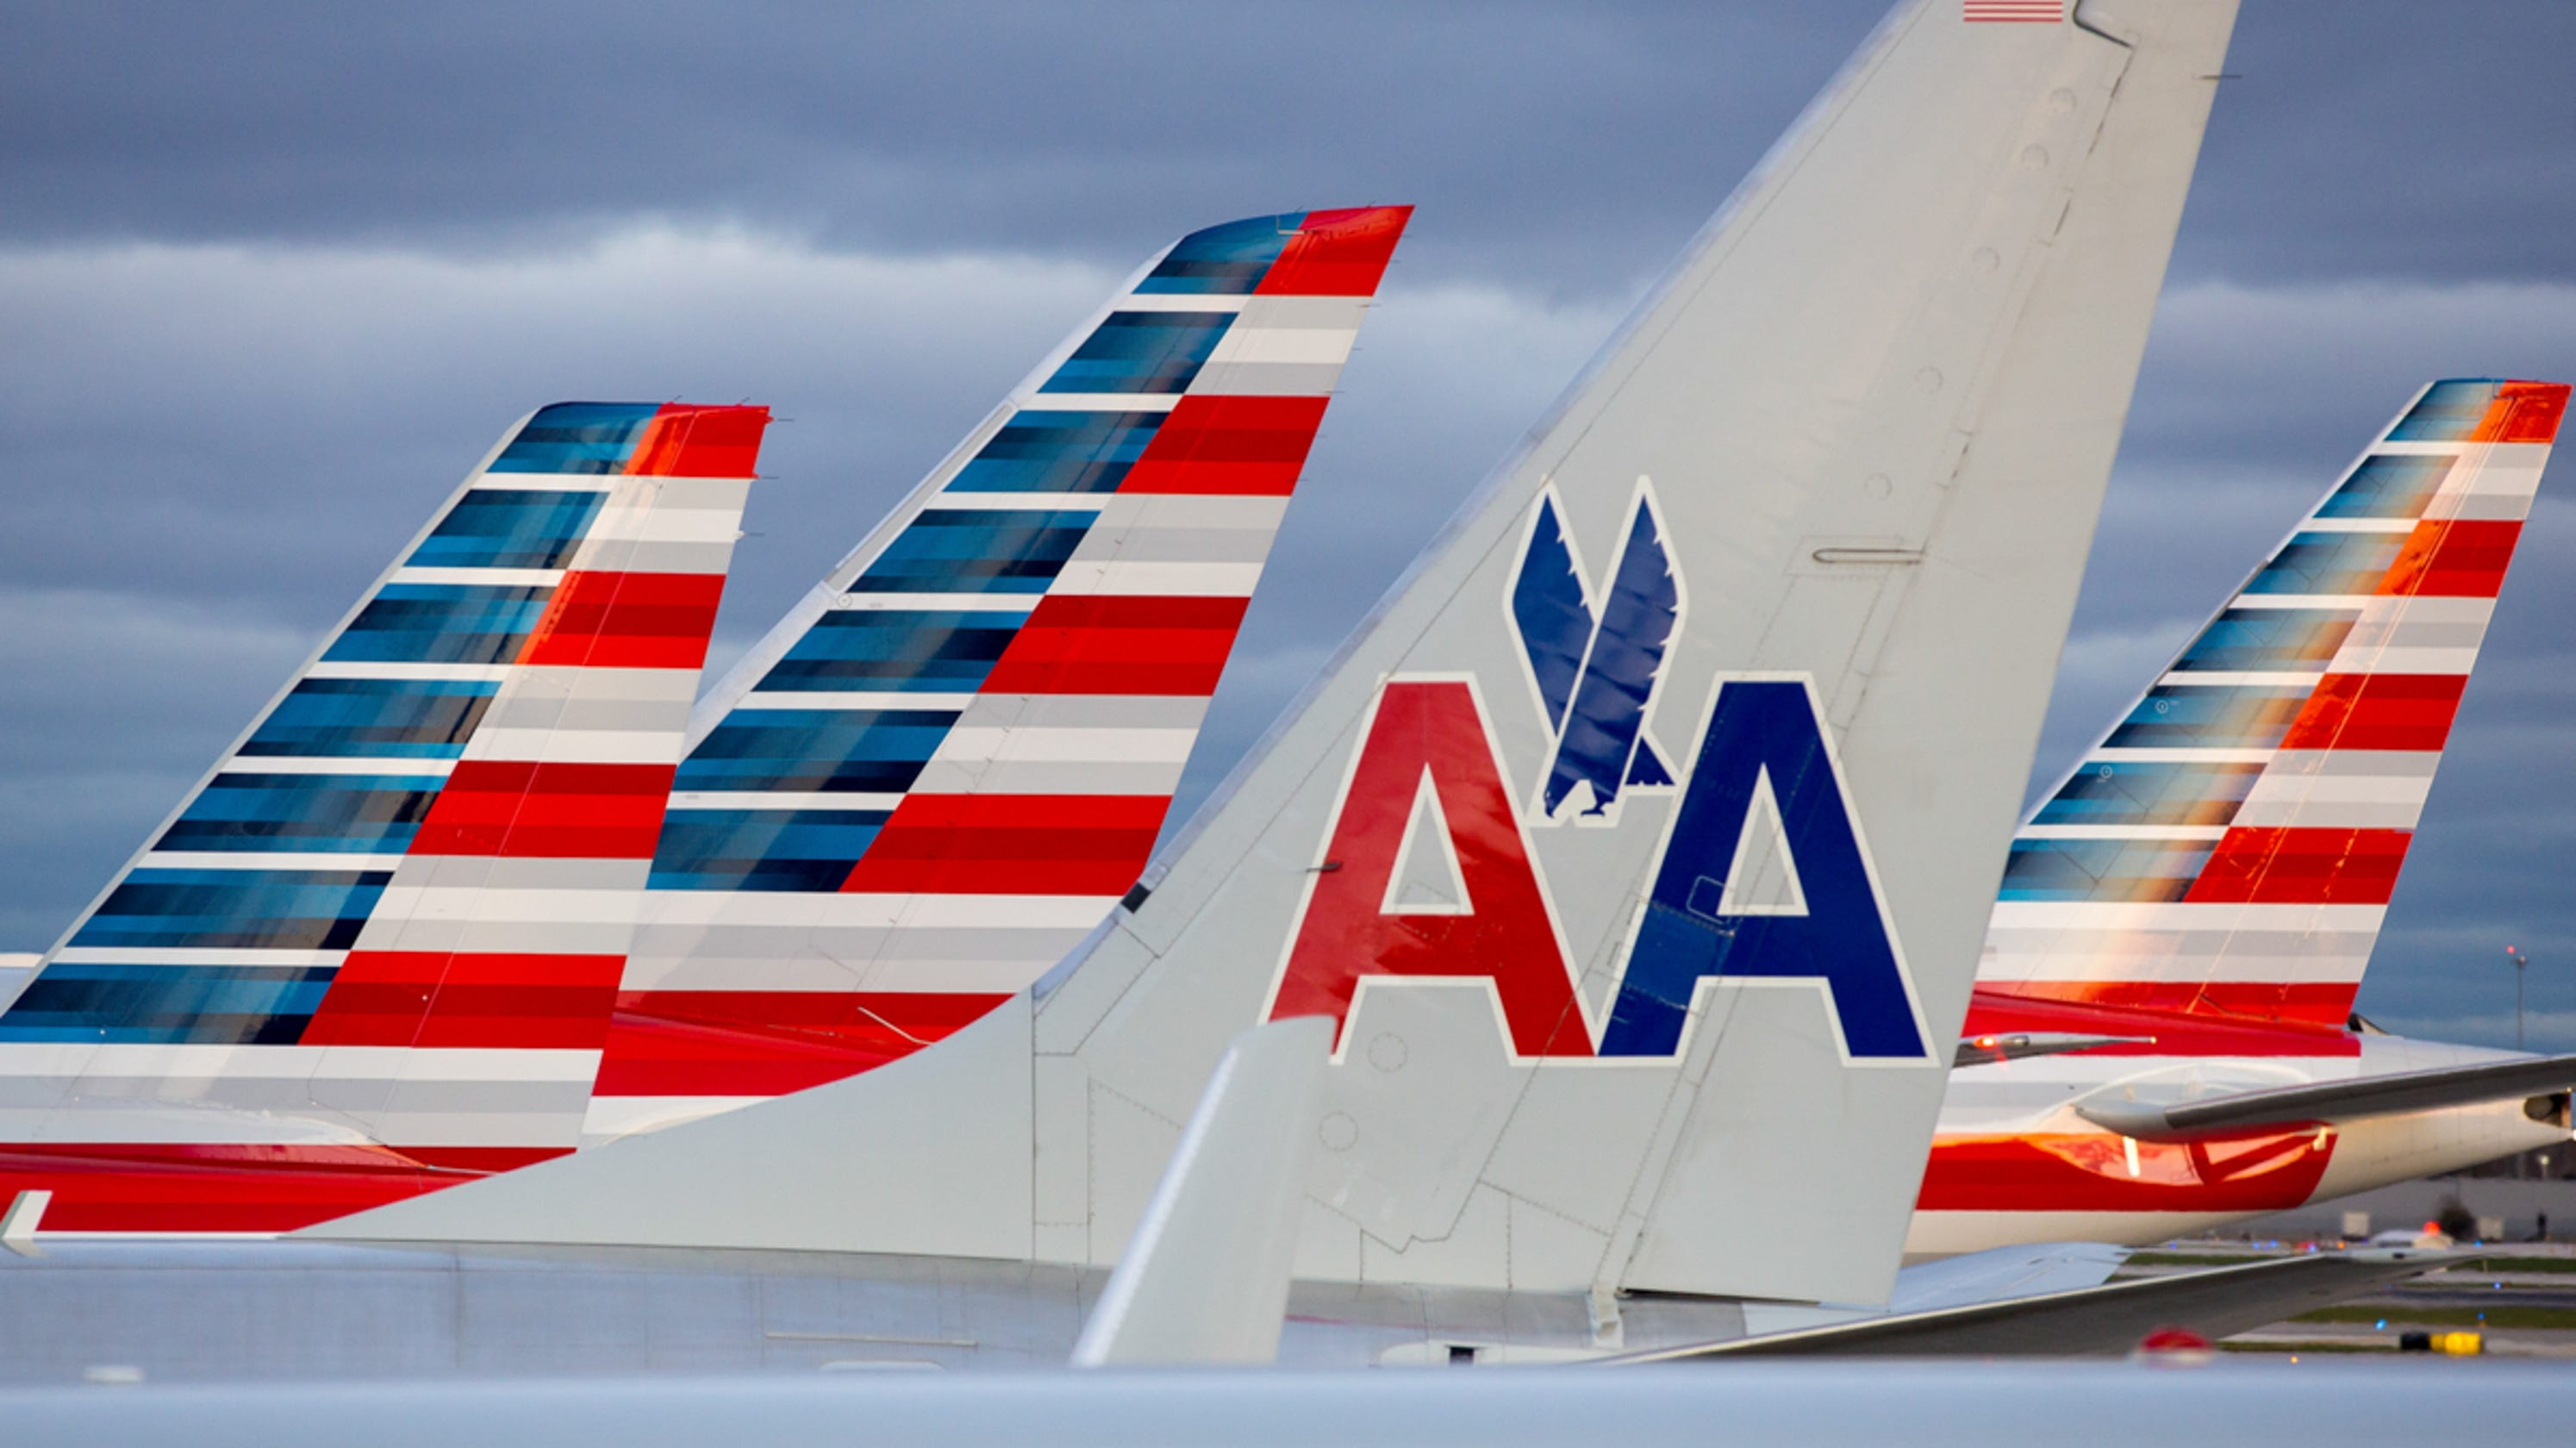 Resultado de imagen para american airlines dallas fort worth